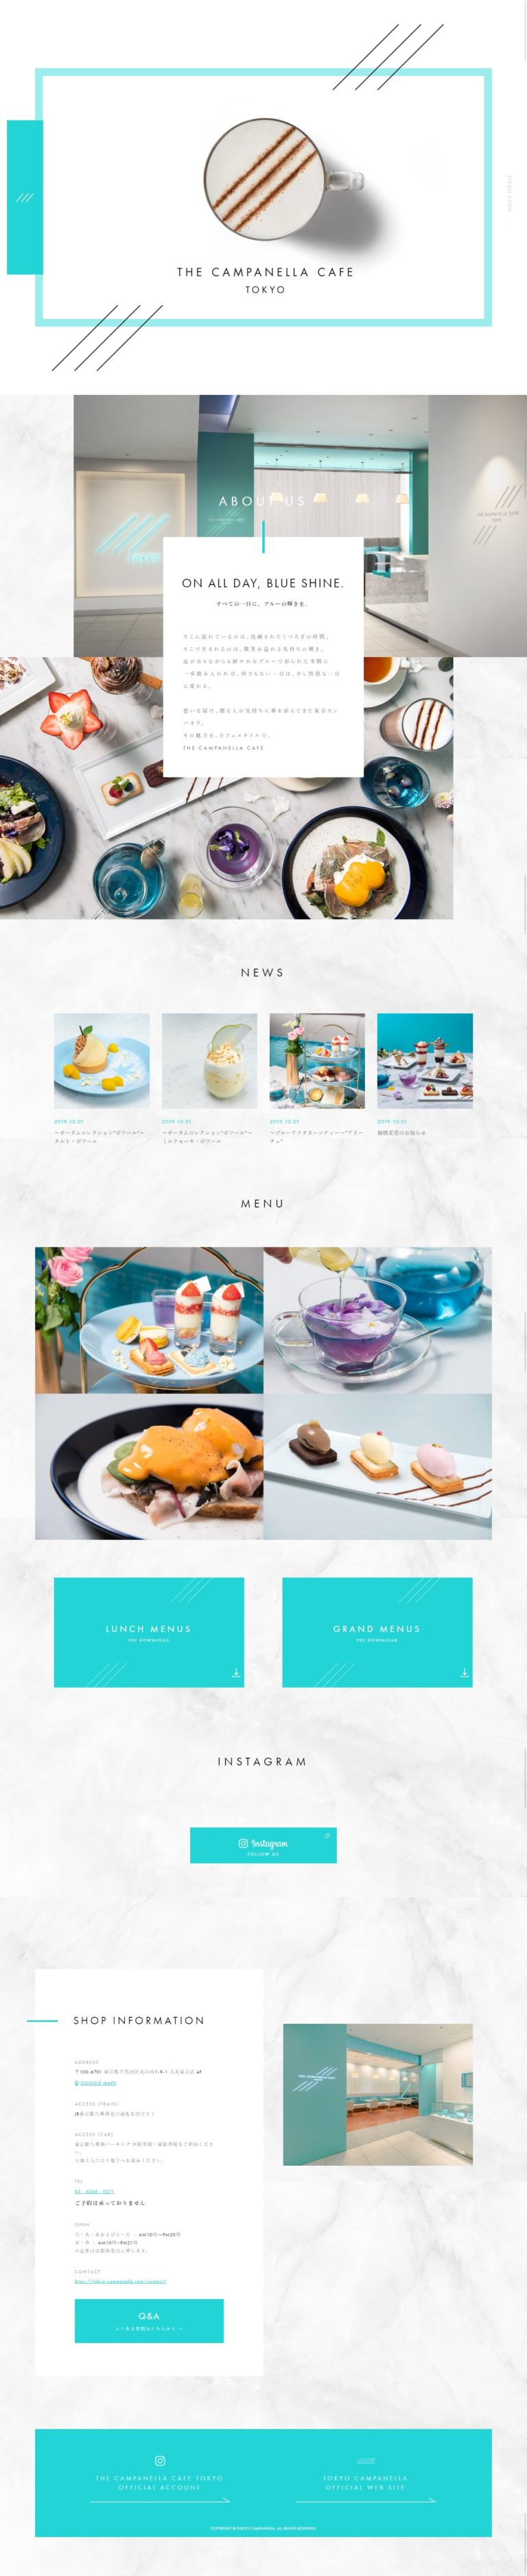 THE CAMPANELLA CAFE│OFFICIAL SITE